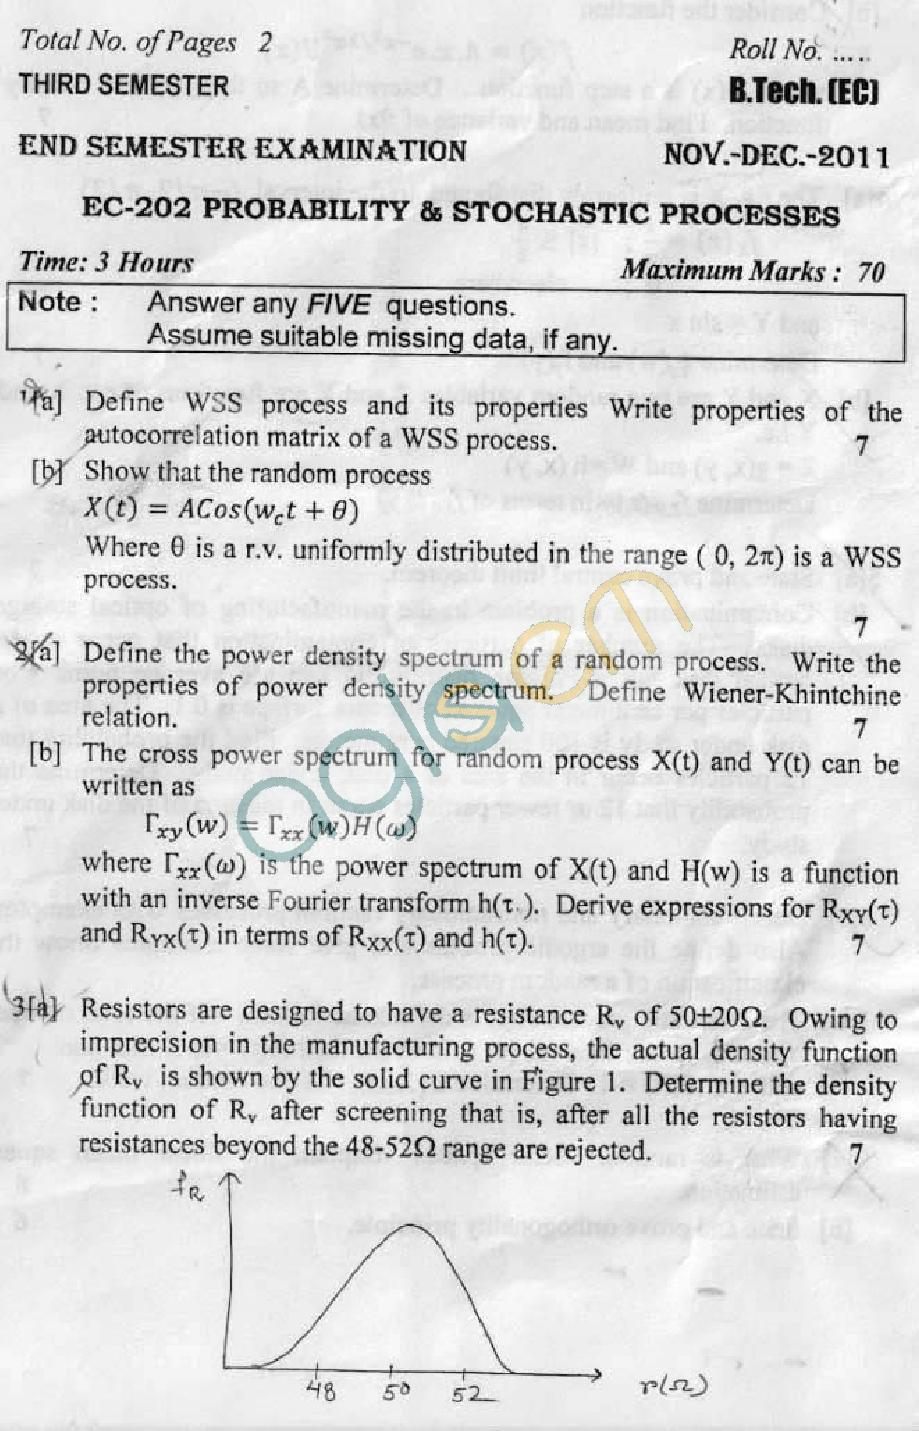 DTU Question Papers 2011 - 3 Semester - End Sem - EC-202